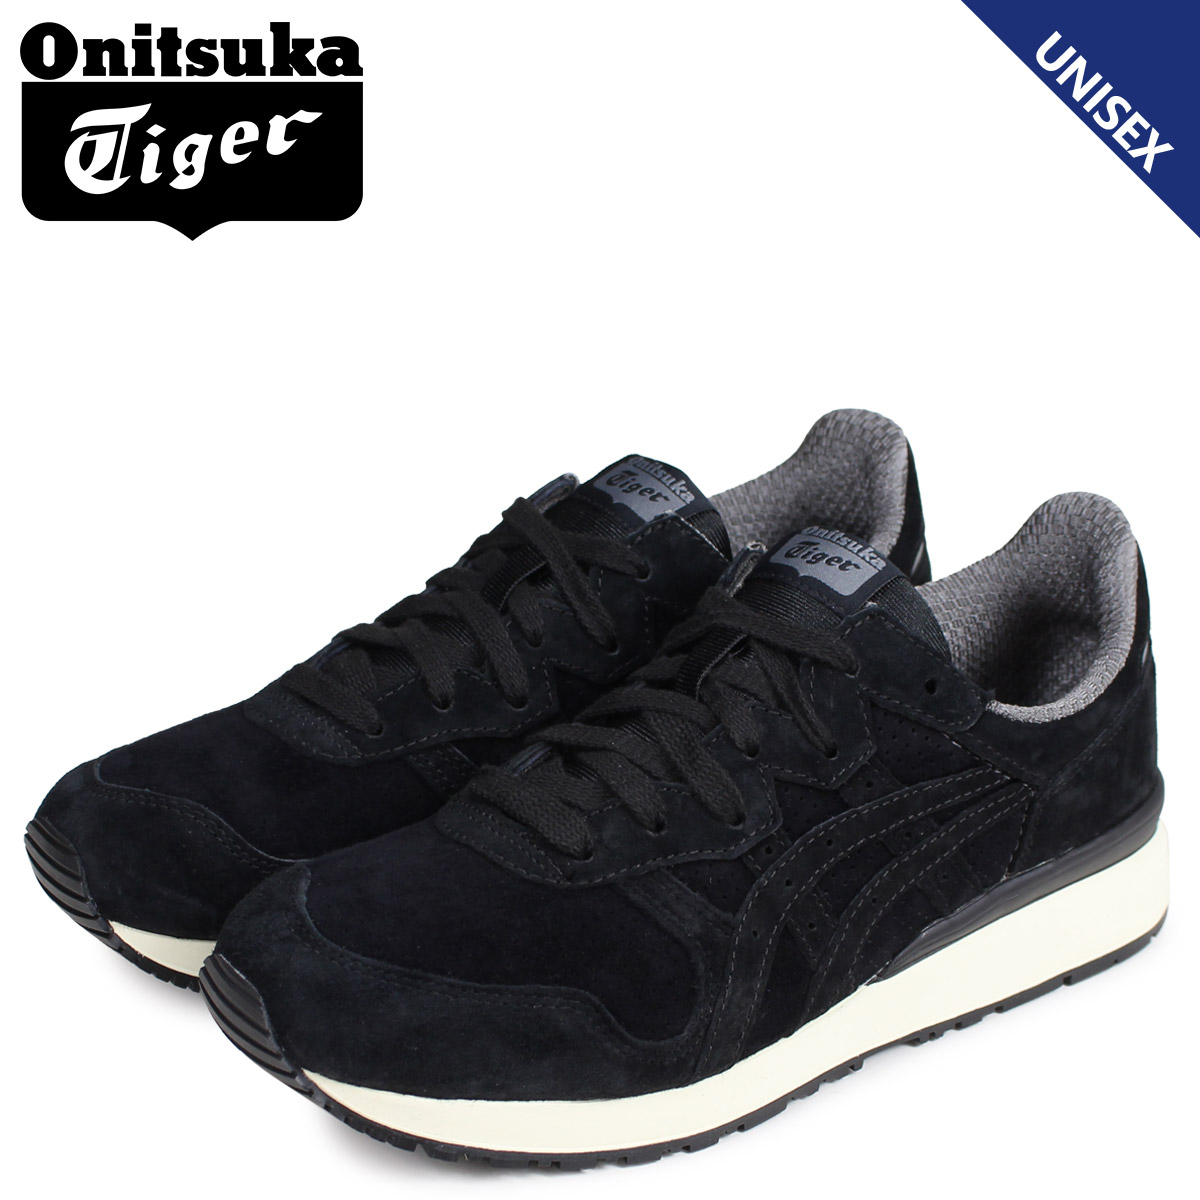 purchase cheap 2ffdf 80c5f Onitsuka Tiger Onitsuka tiger tiger Alley sneakers men gap Dis TIGER ALLY  black black D701L-9090 [the 8/1 additional arrival]